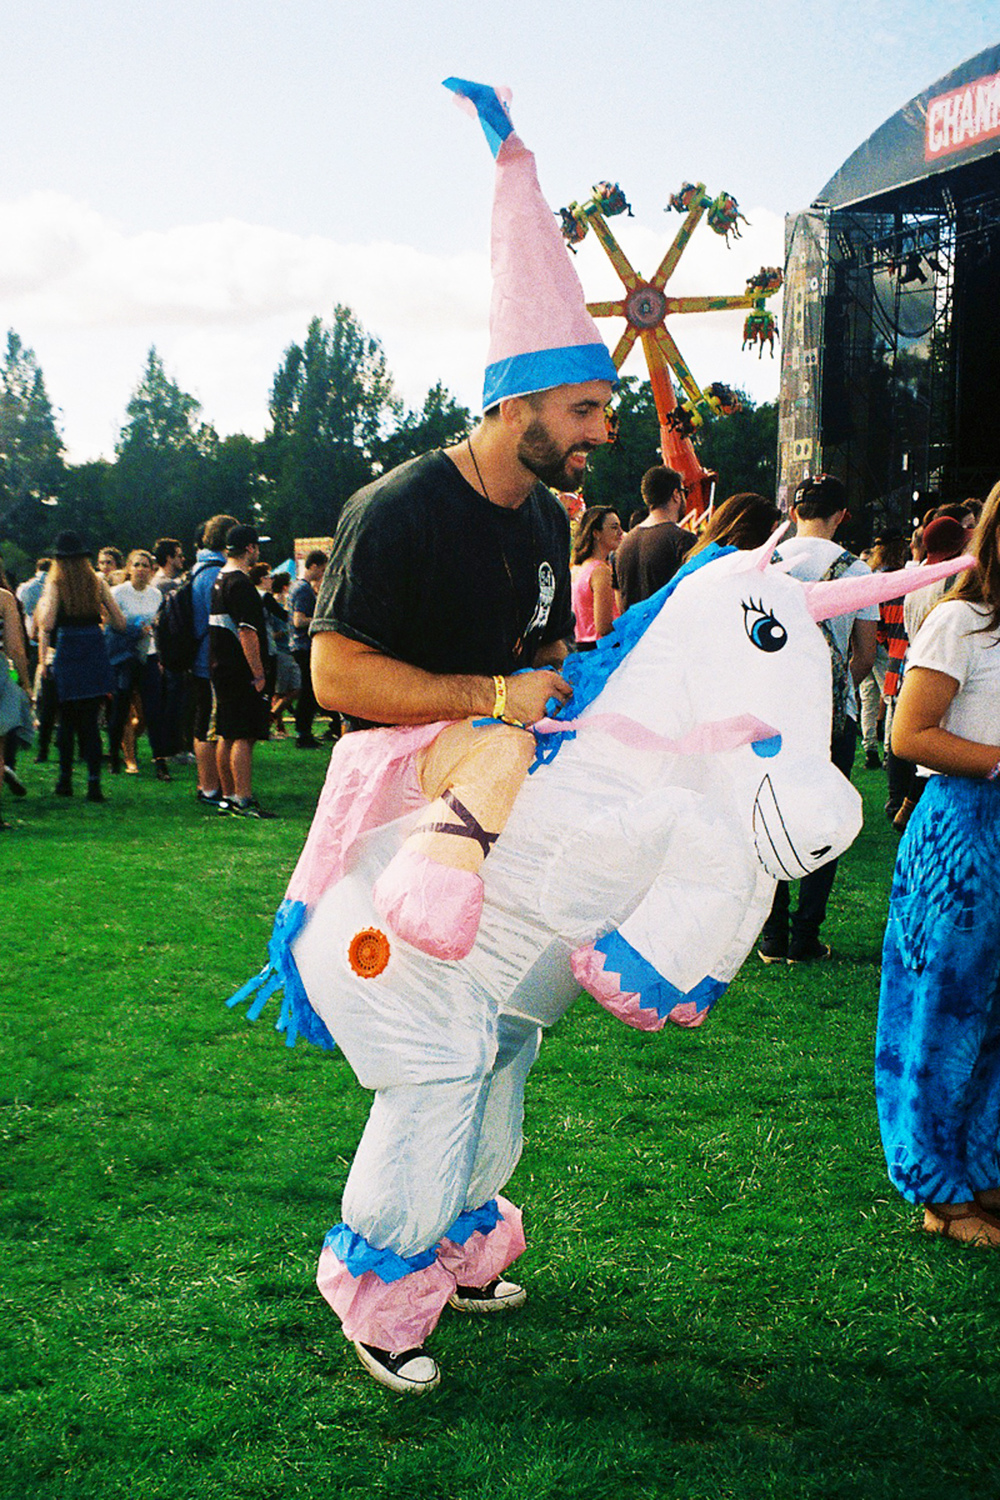 VOENA_GROOVIN_THE_MOO_CANBERRA_FILM_2015_35MM_PHOTOS-10.jpg